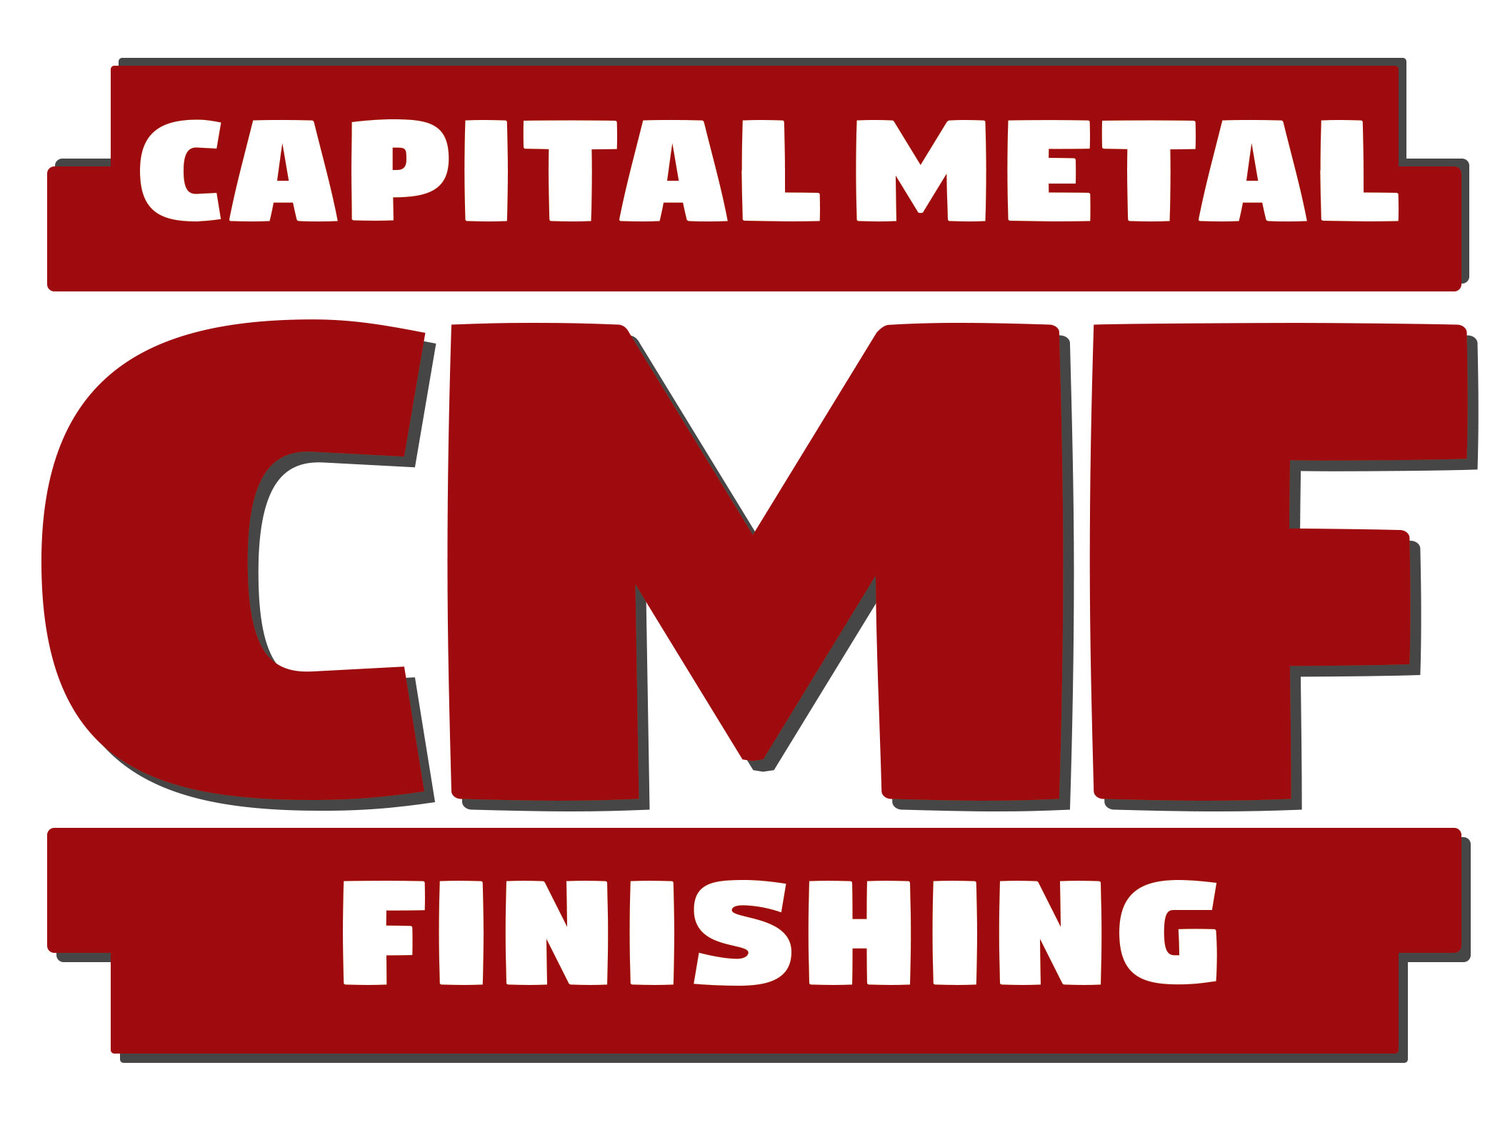 Capital Metal Finishing